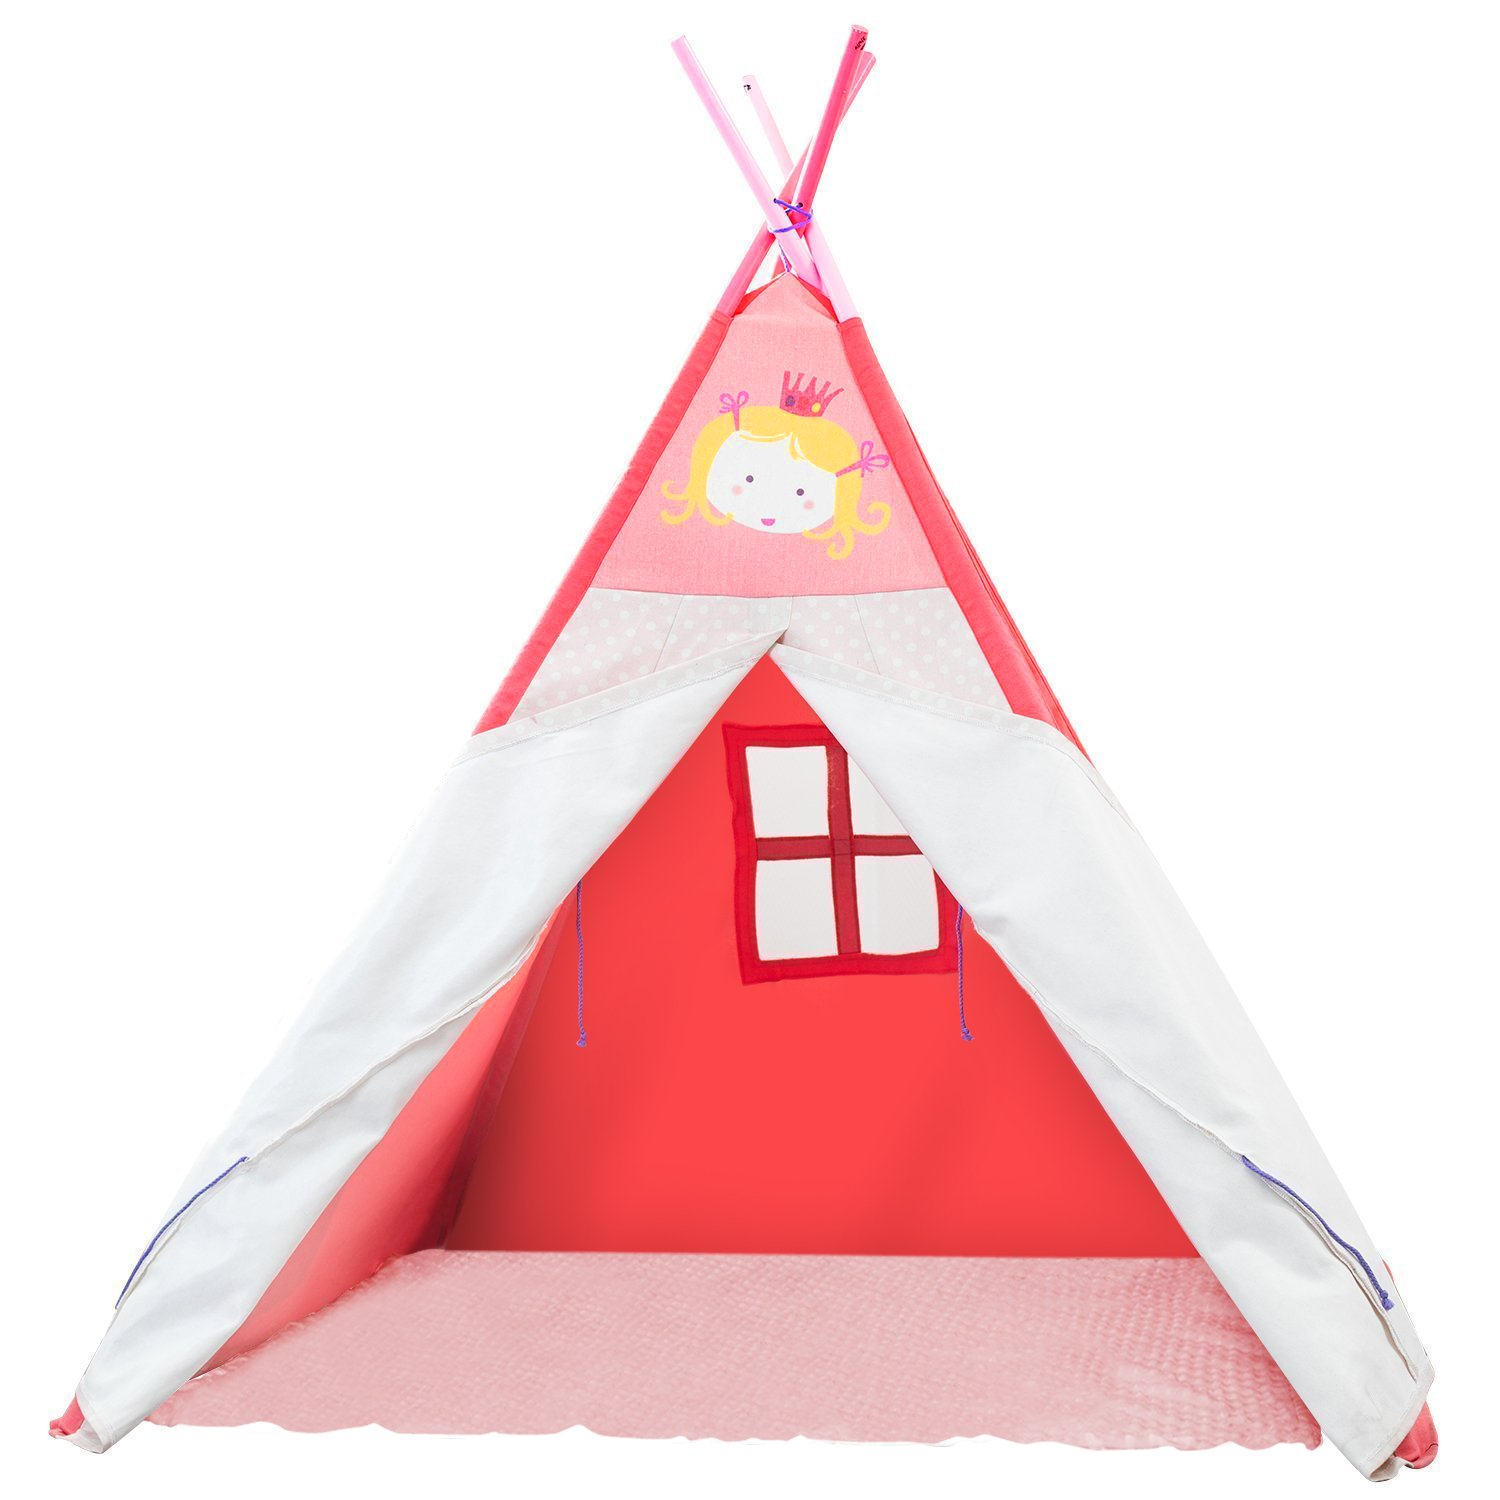 big sale b1e3c f5f83 【Clearance】 20% Off! Labebe Play Teepee Kid, Baby Tent Pink for Kids 2-5  Years, Child Teepee...